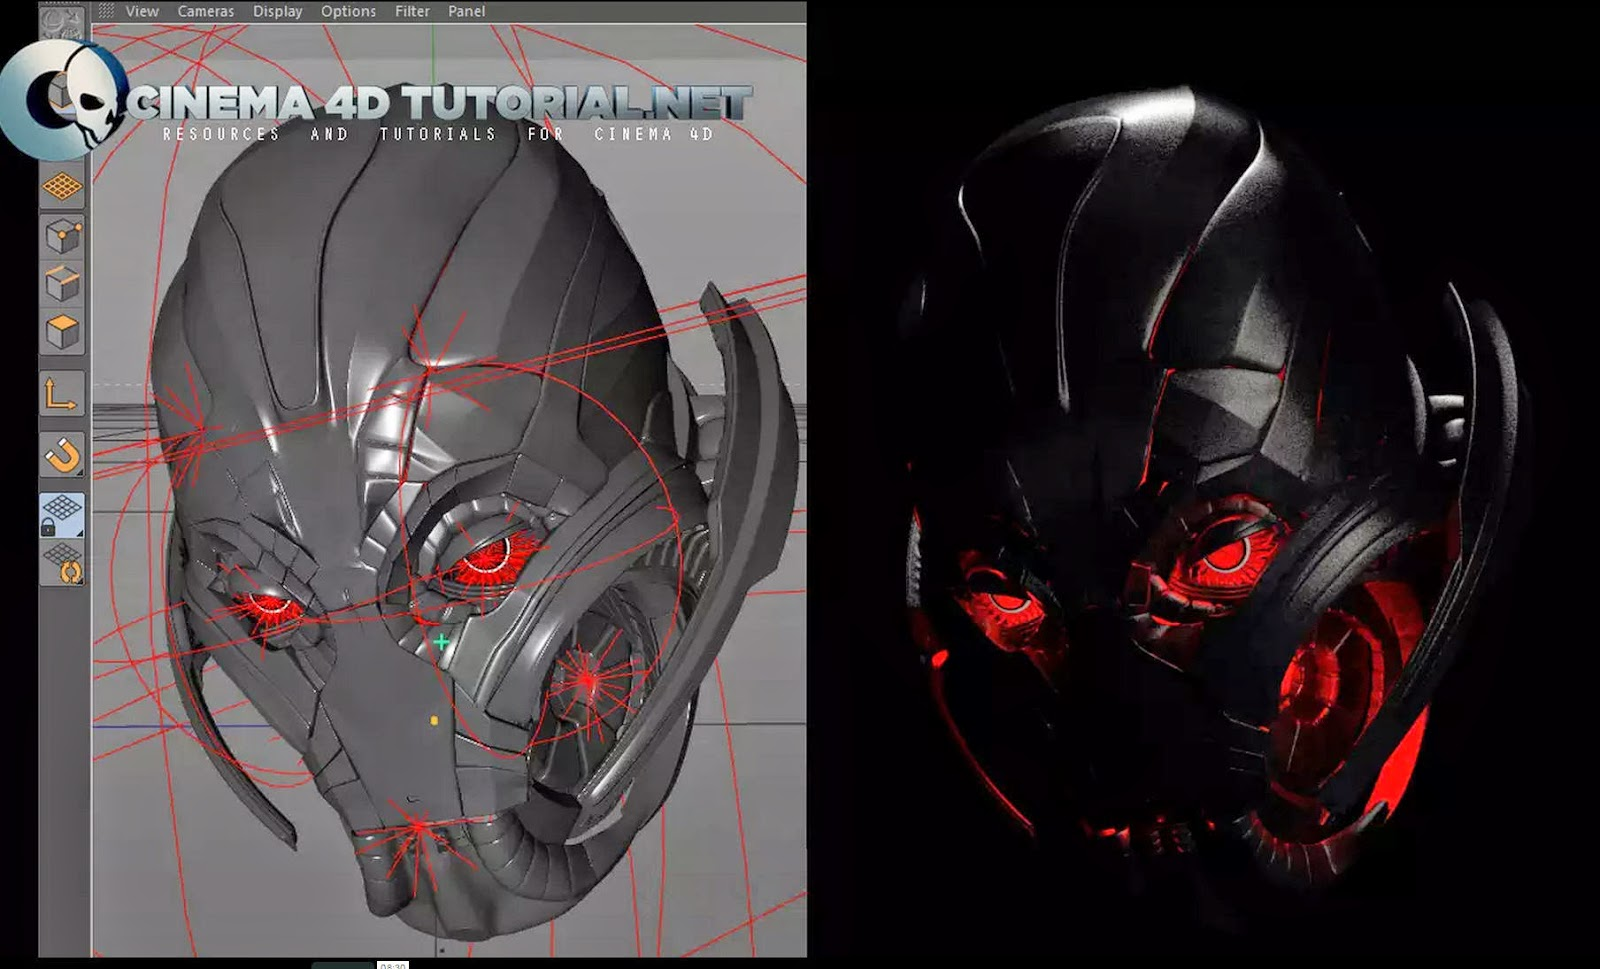 Character Design Cinema 4d Tutorial : Creating avengers age of ultron d character in cinema d cg